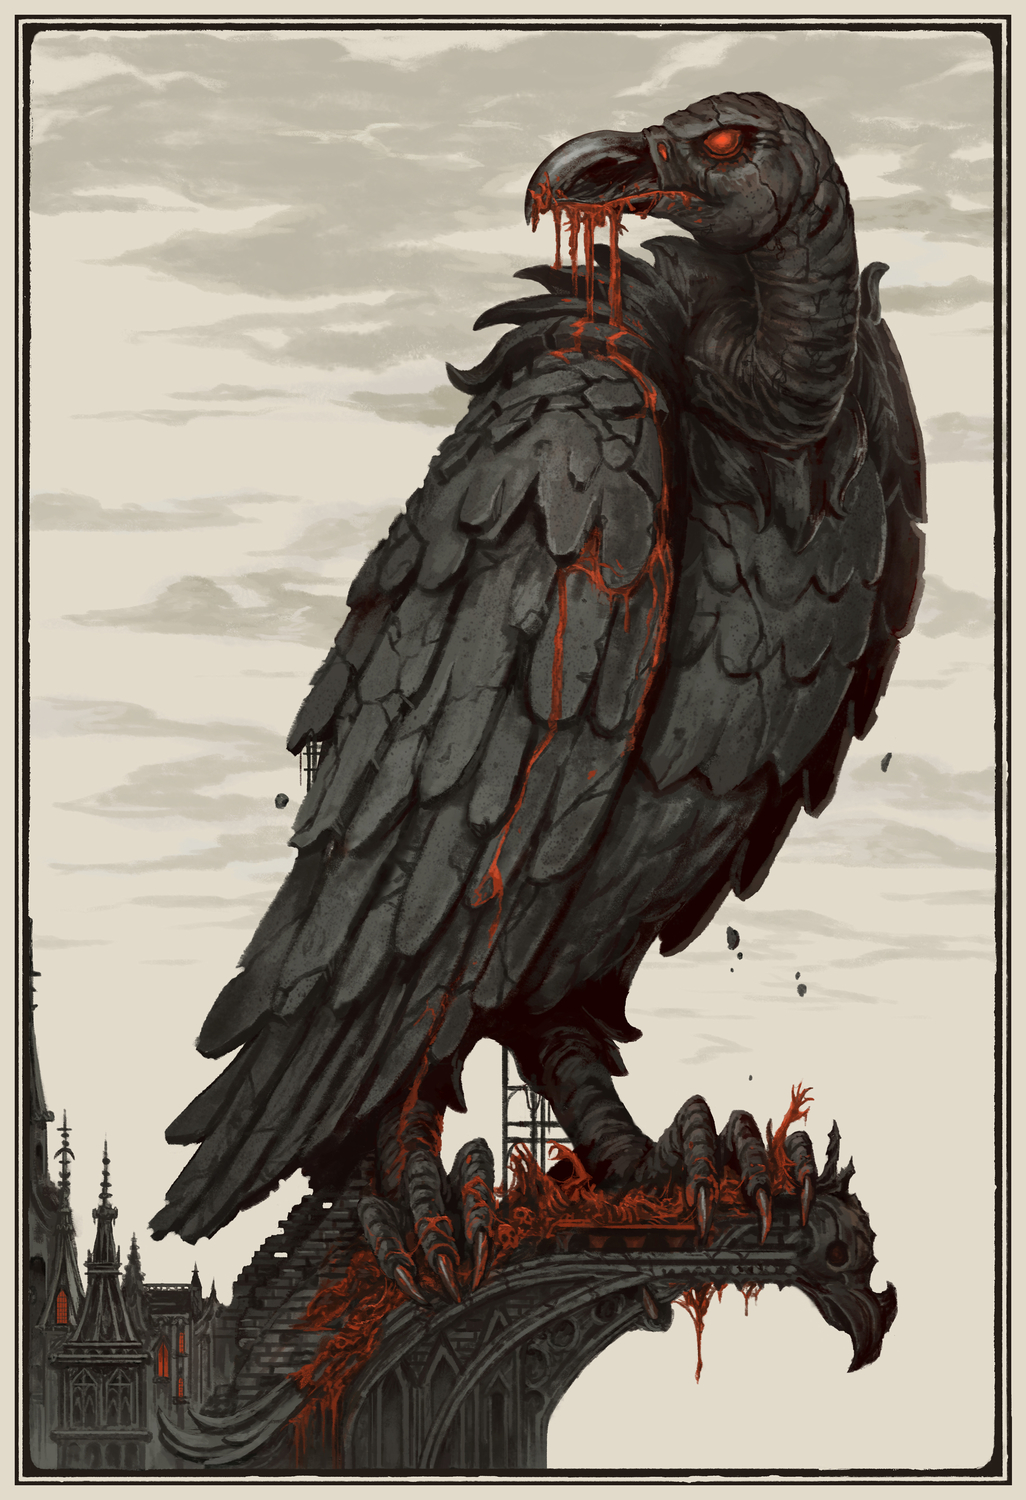 The Vulture Artwork by James Bousema